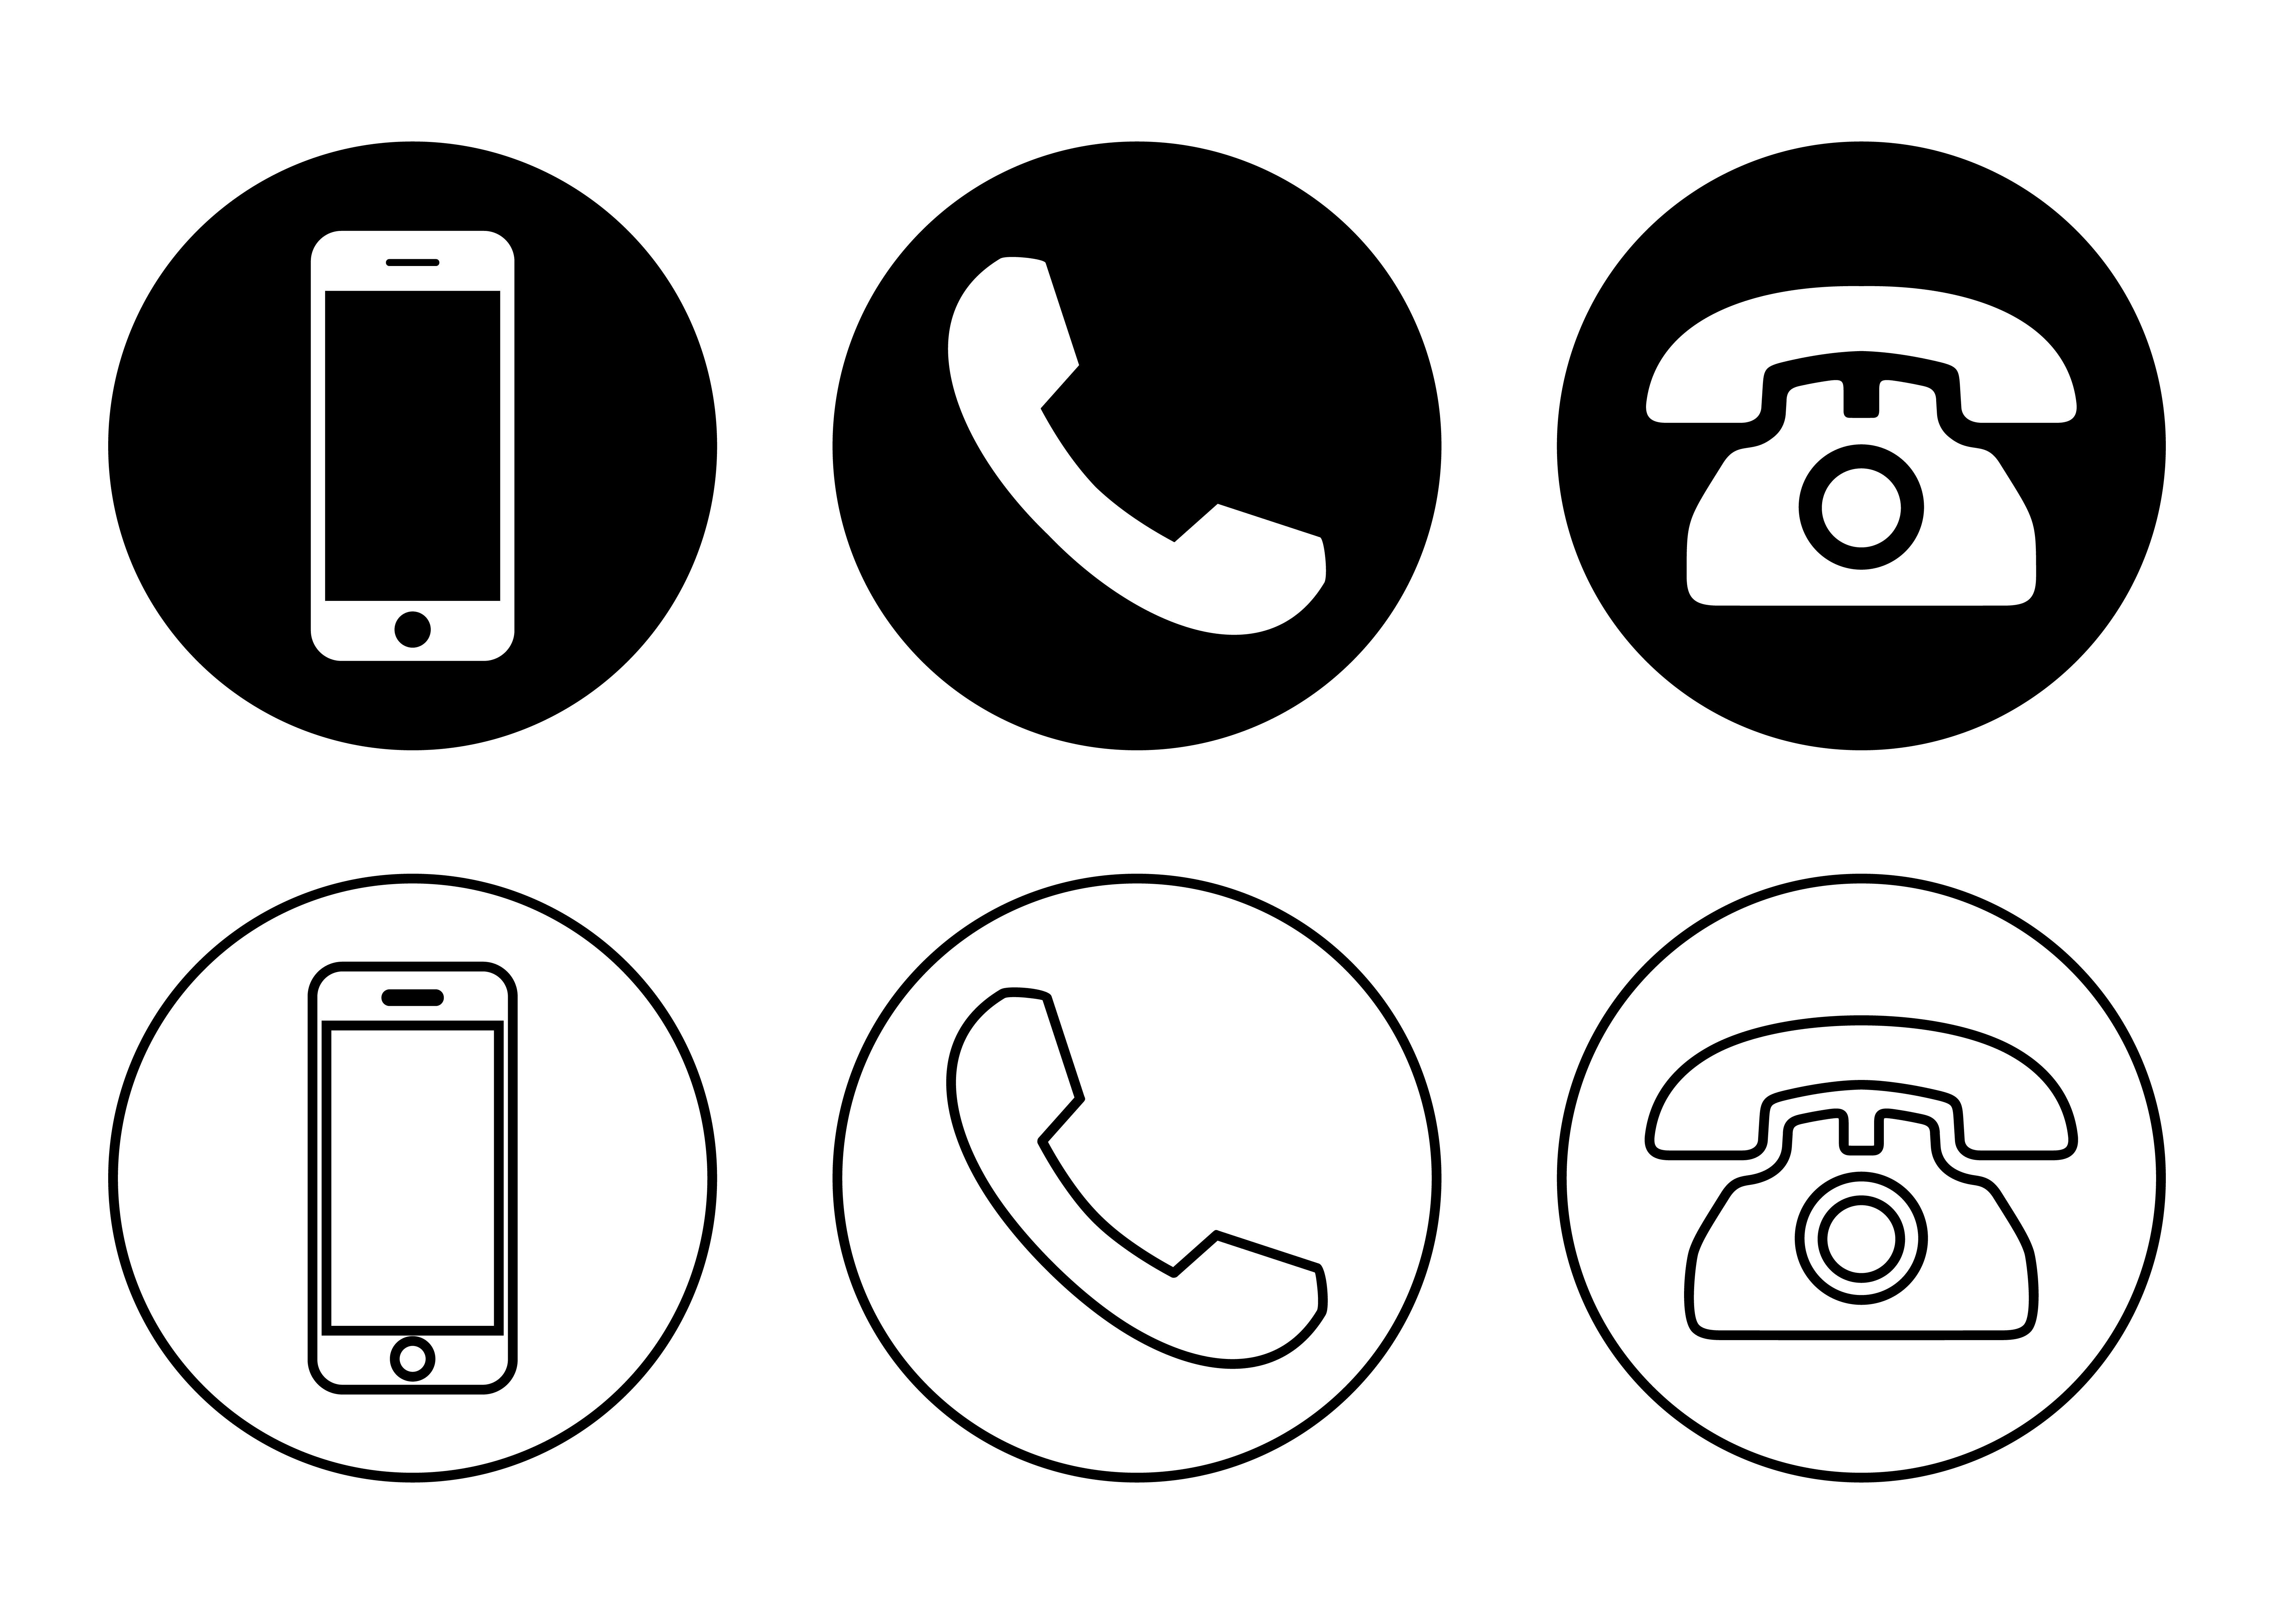 Phone Icon Vector Call Icon Vector Mobile Phone Smartphone Device Gadget Telephone Icon Phone Icon Phone Logo Mobile Phone